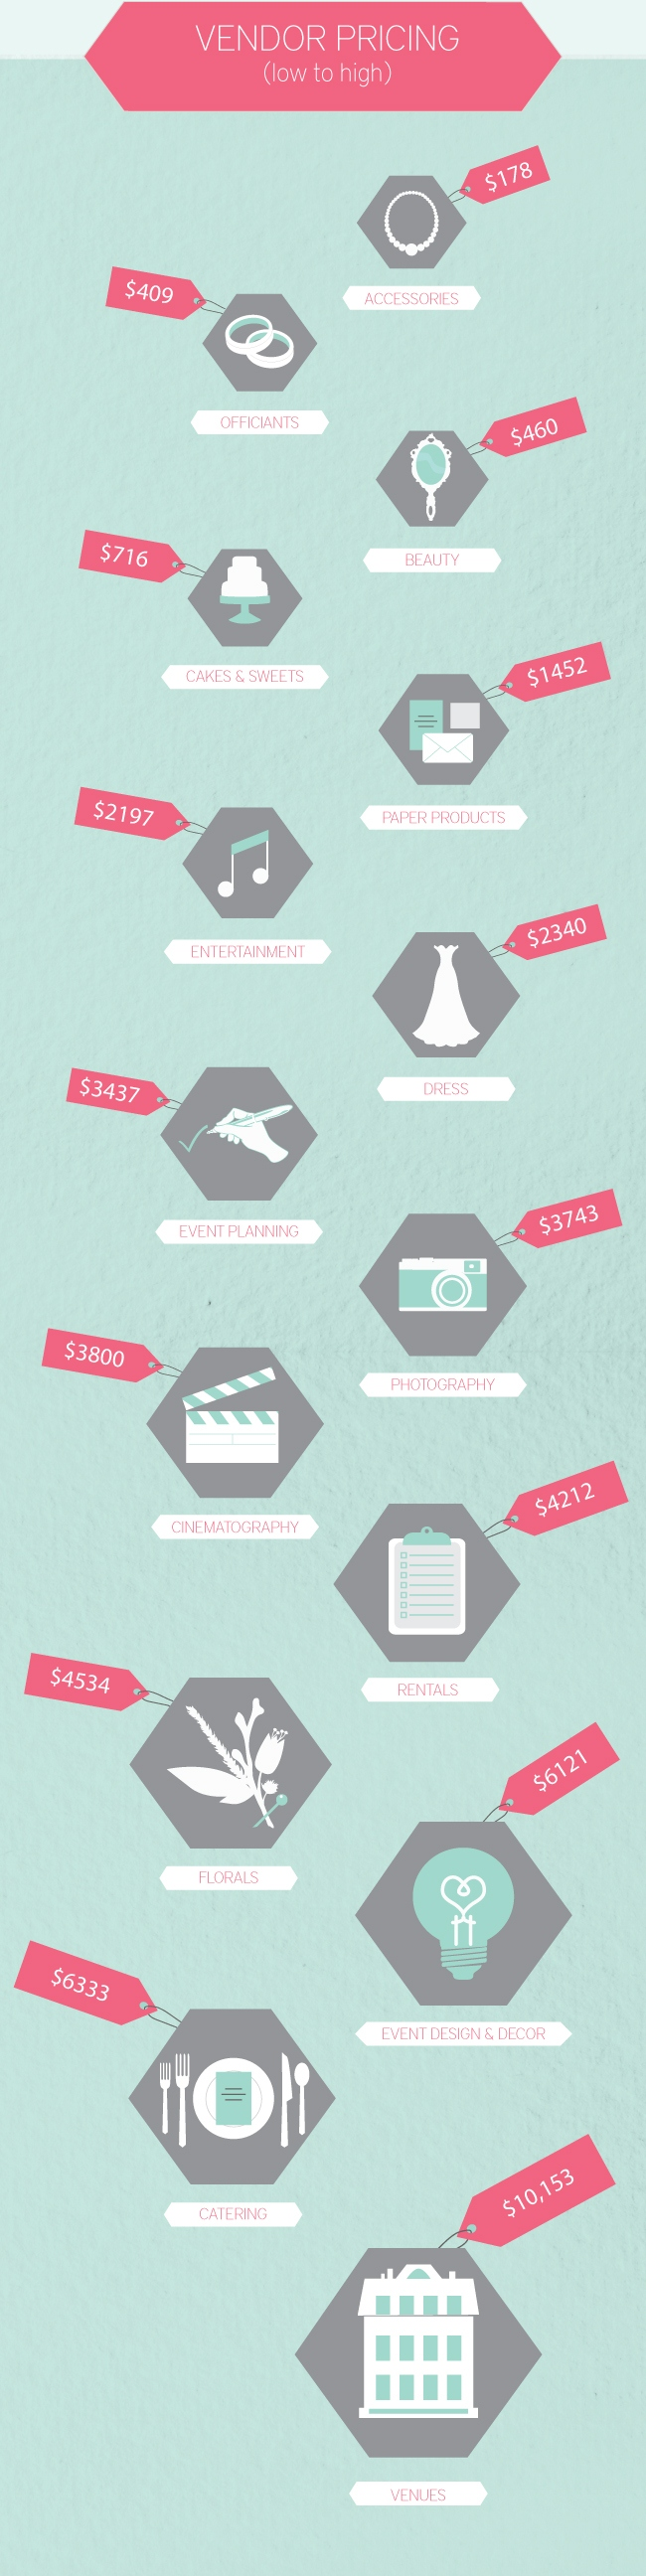 Partial graphic taken from http://theeverylastdetail.com/what-a-wedding-costs-use-professionals/